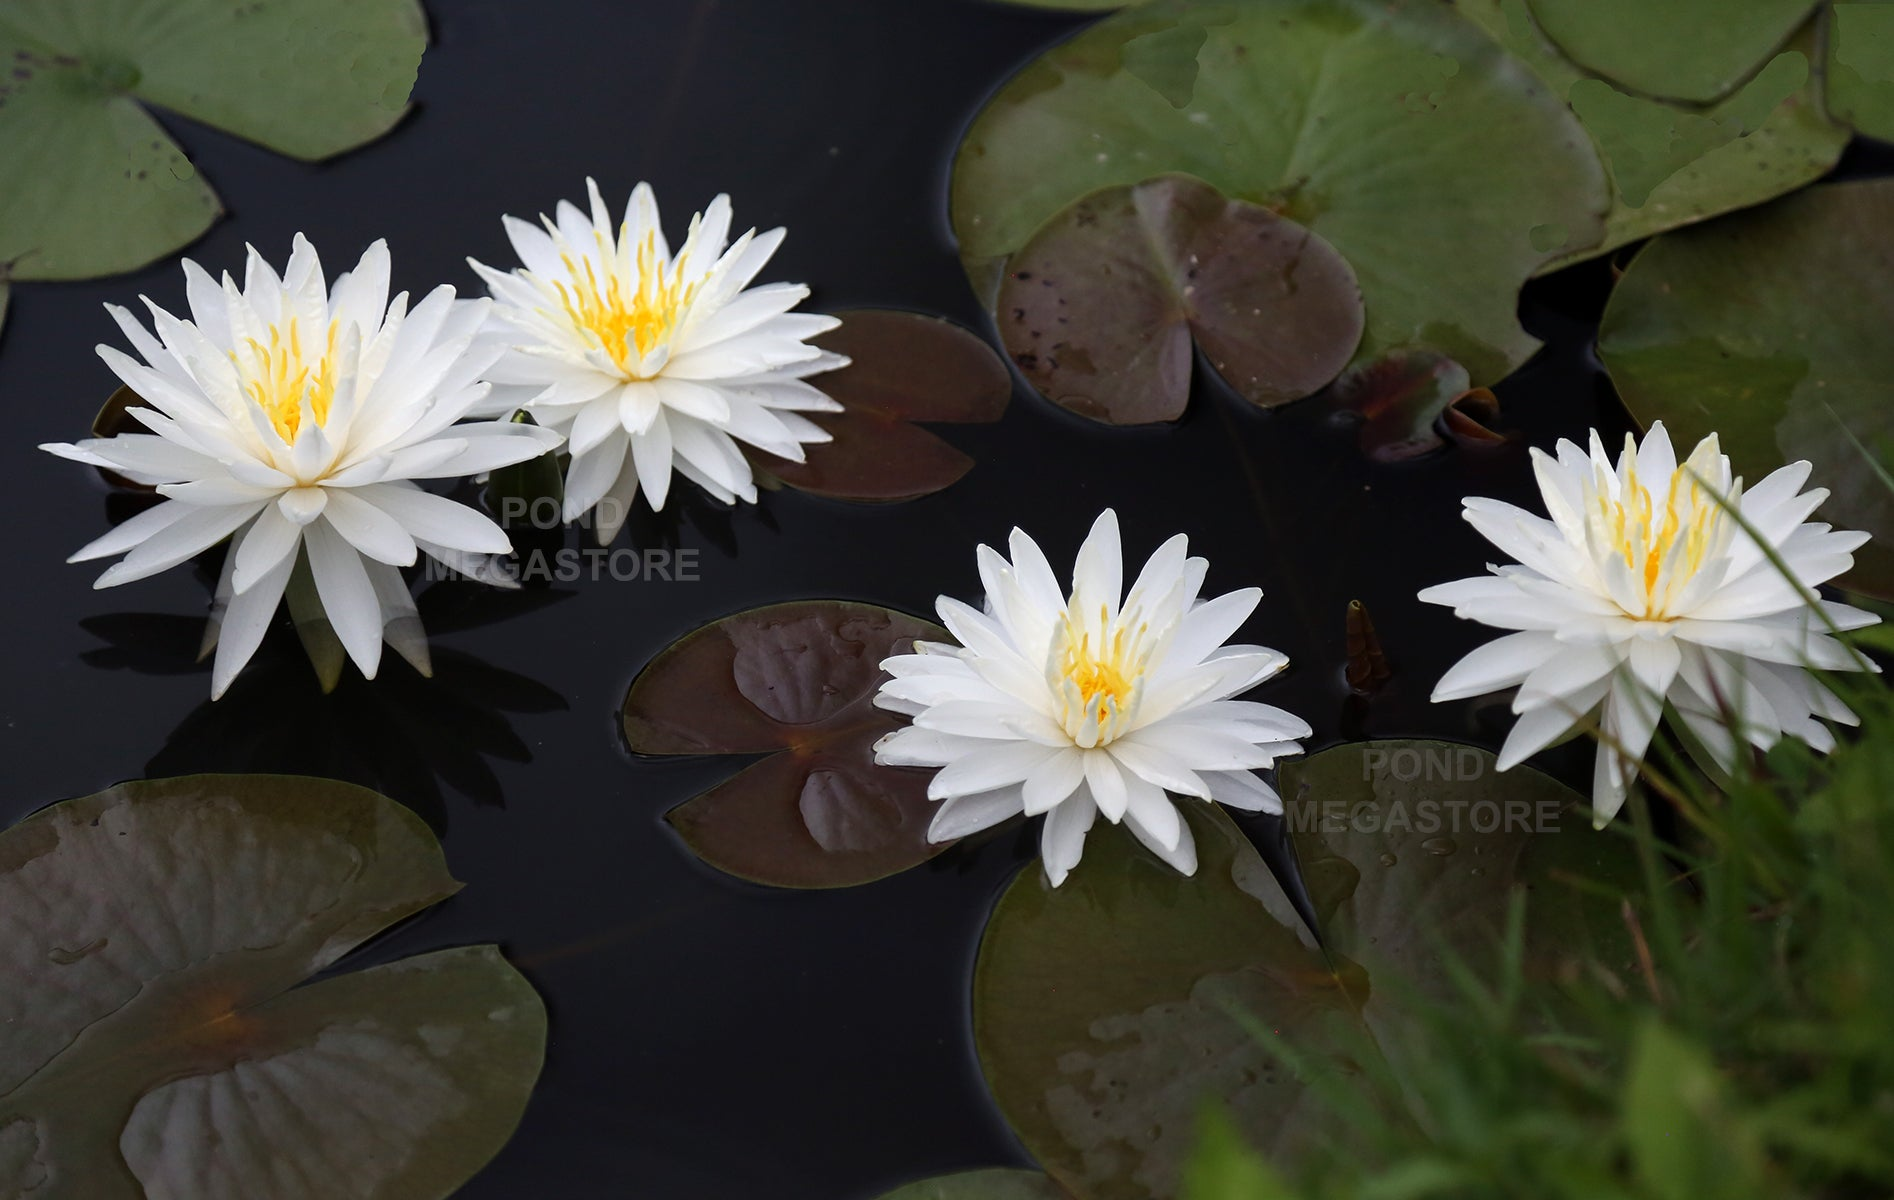 Water Lilies For Natural Earth Bottom Ponds Pondmegastore